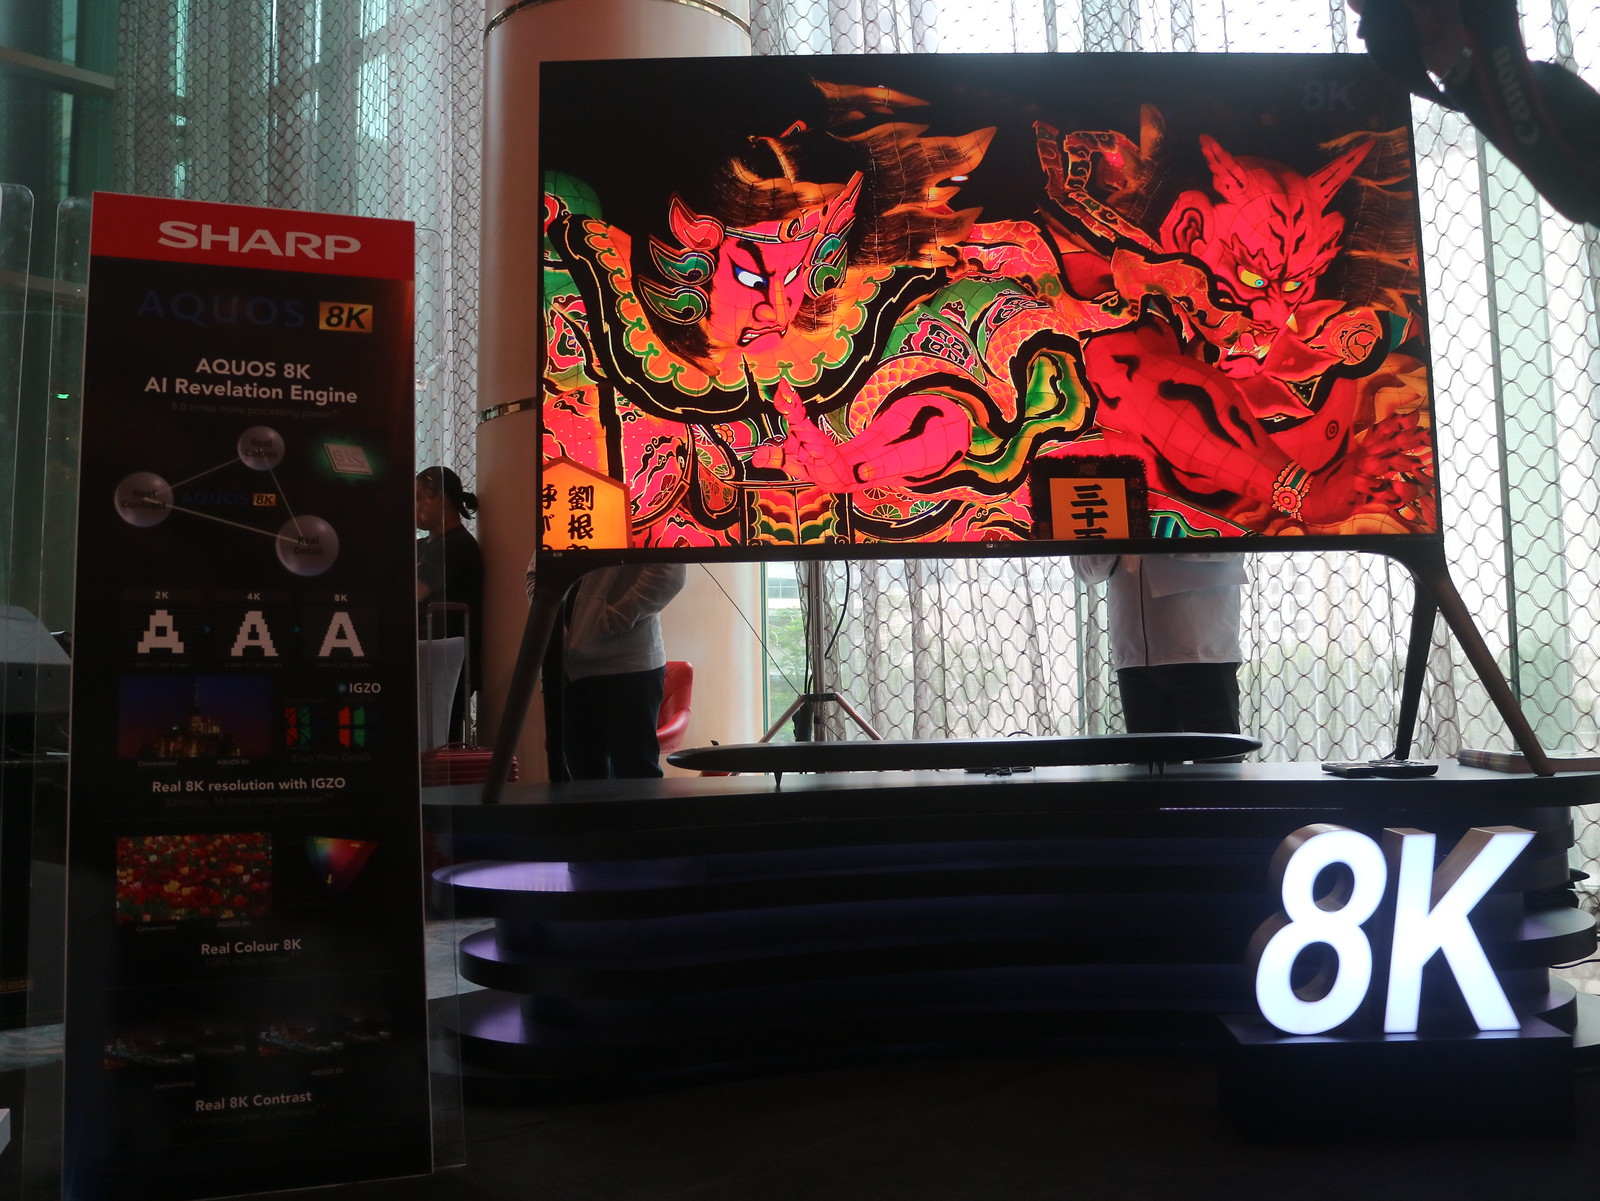 Better Solutions and Innovations with Sharp Philippines for the everyday Pinoy